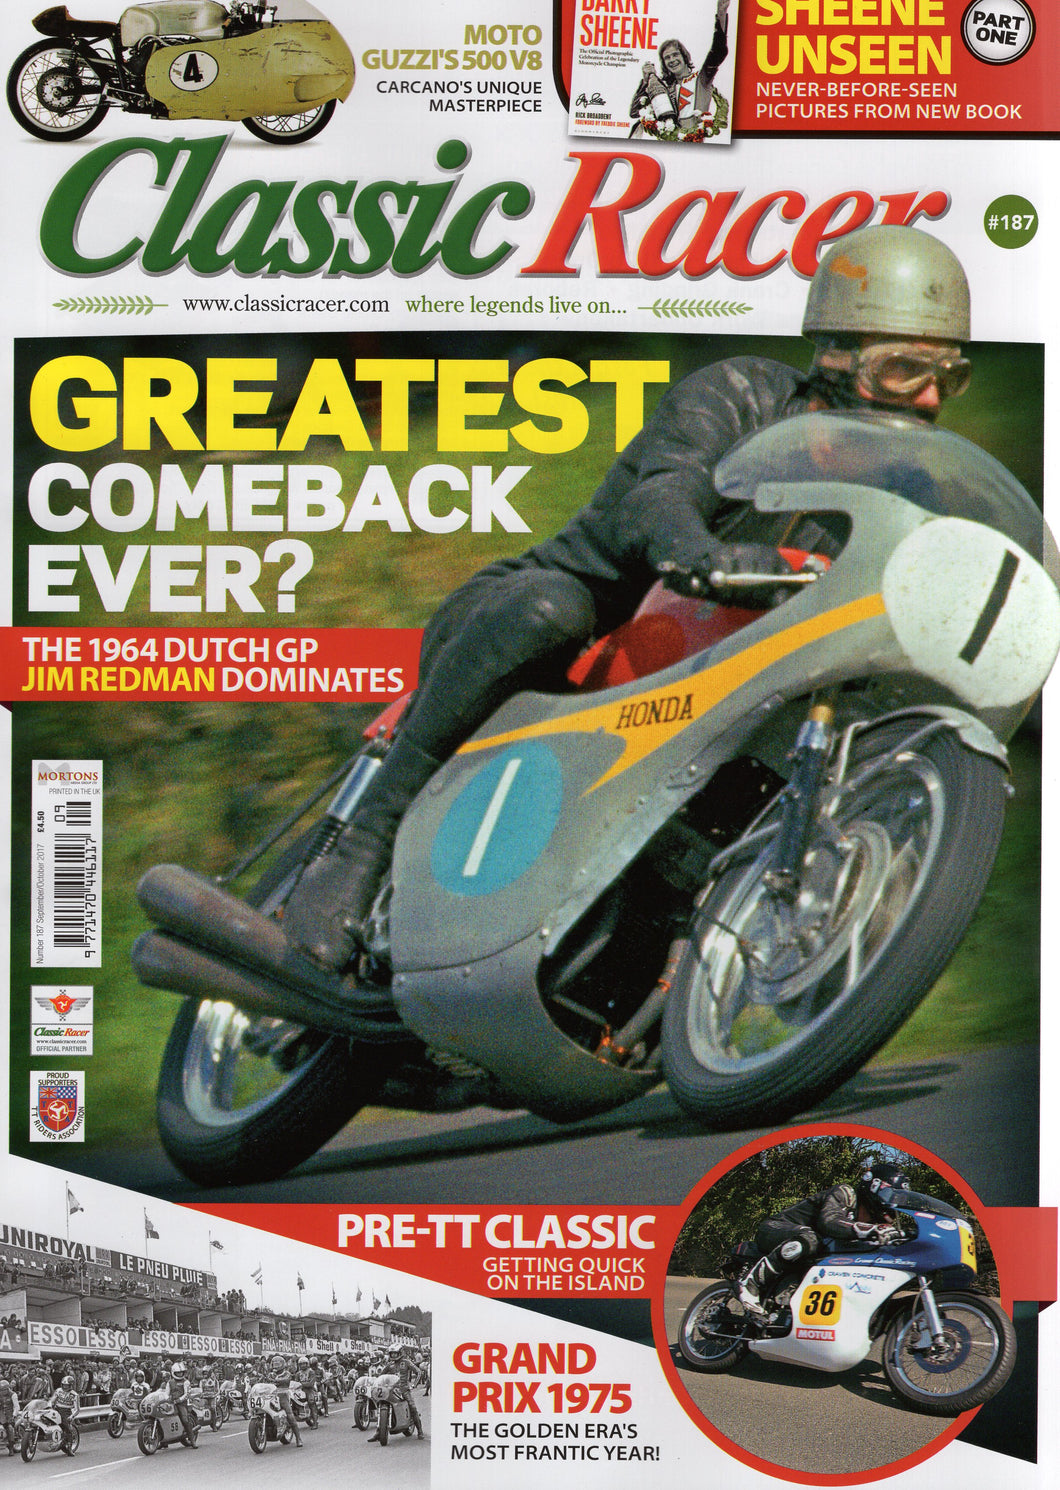 CR201710 Classic Racer September/October 2017